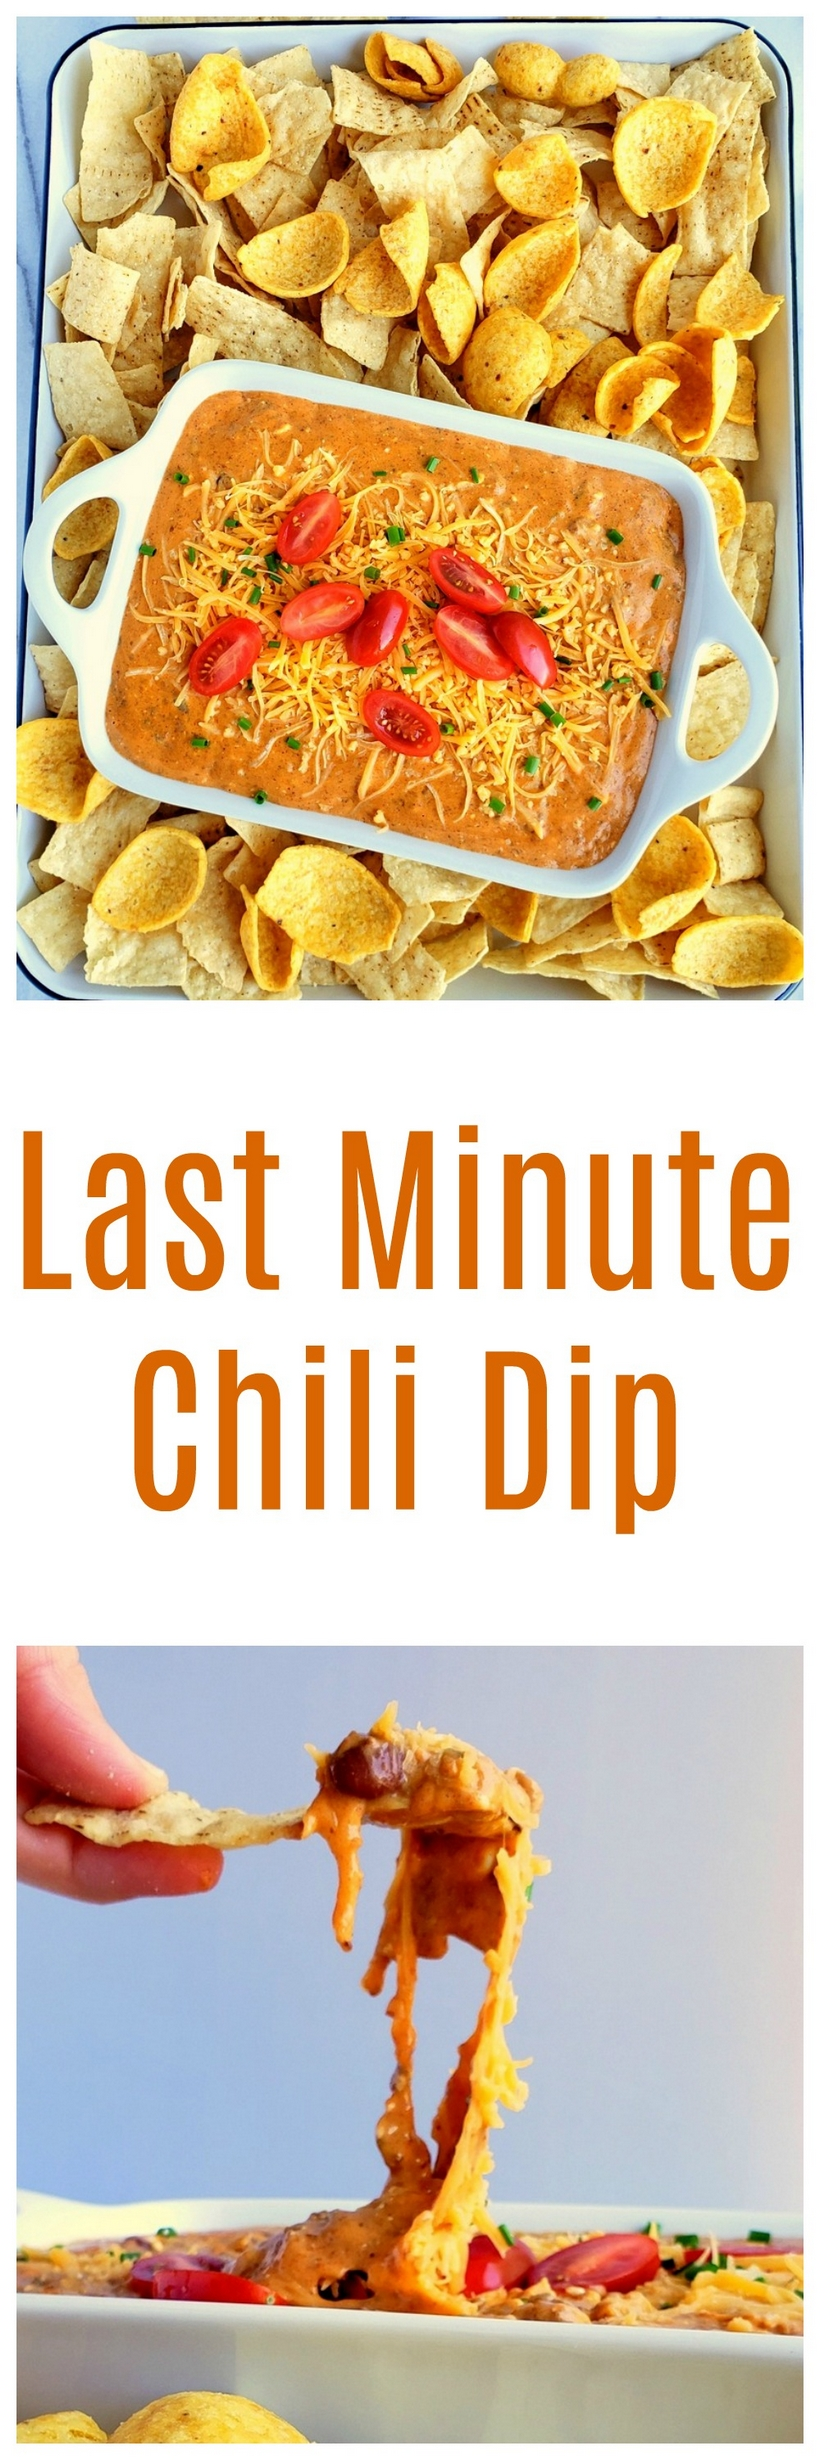 Last Minute Chili Dip is the perfect dish to make for a last-minute party invitation, drop-in company, impromptu pool parties and swarms of teenagers who might have descended on your home. via @cmpollak1